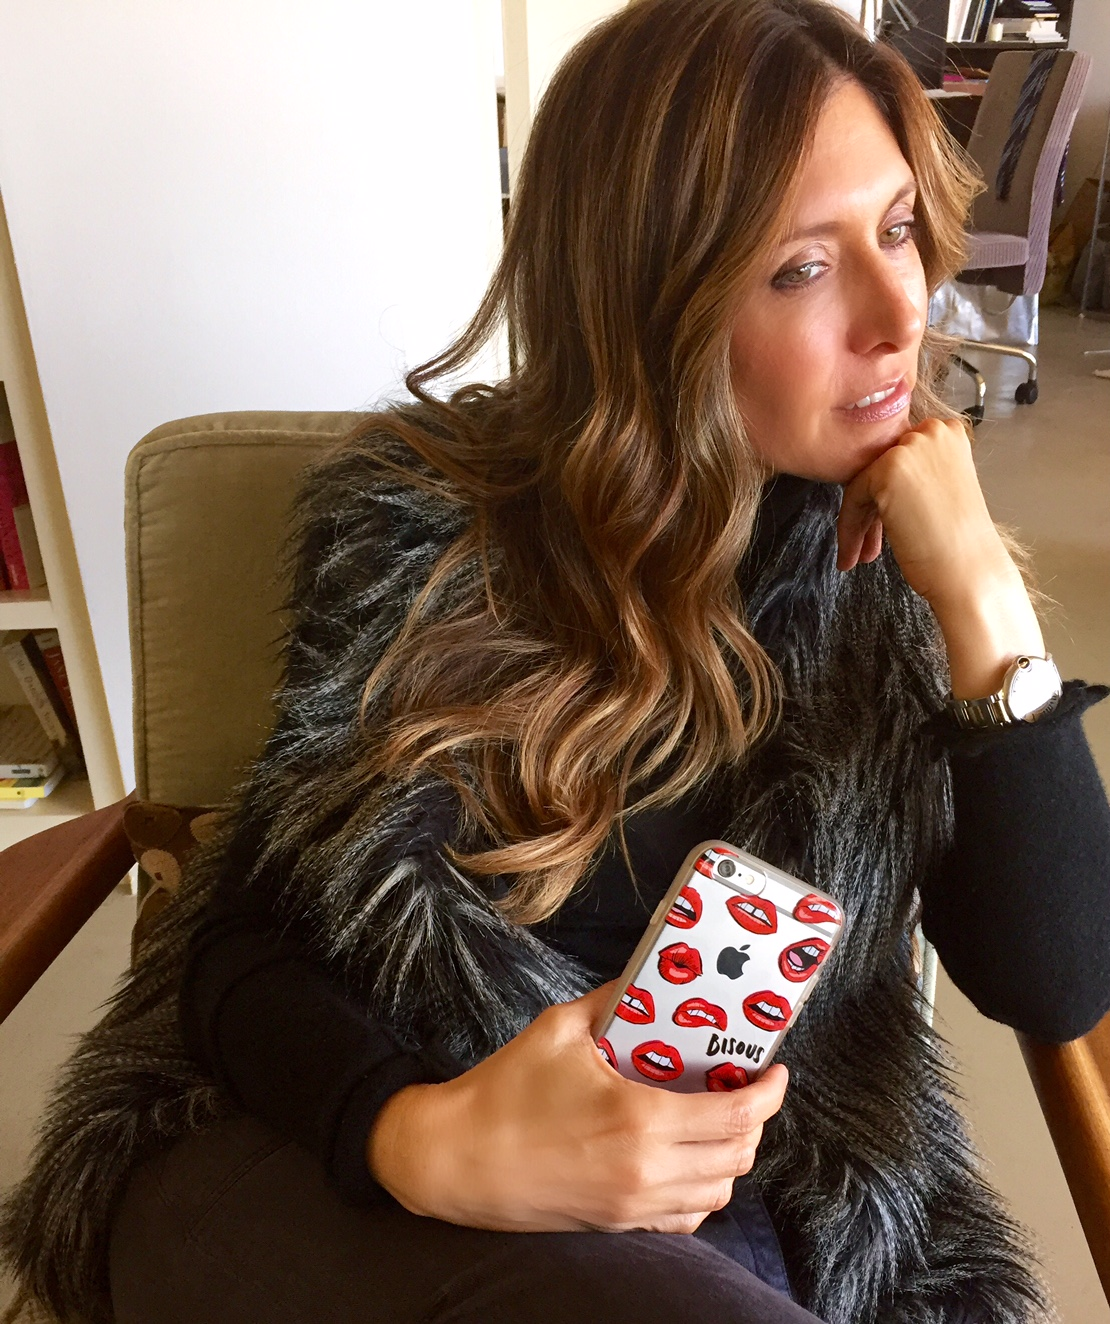 MelissaMeyers & the Sonix iPhone 6/6s case